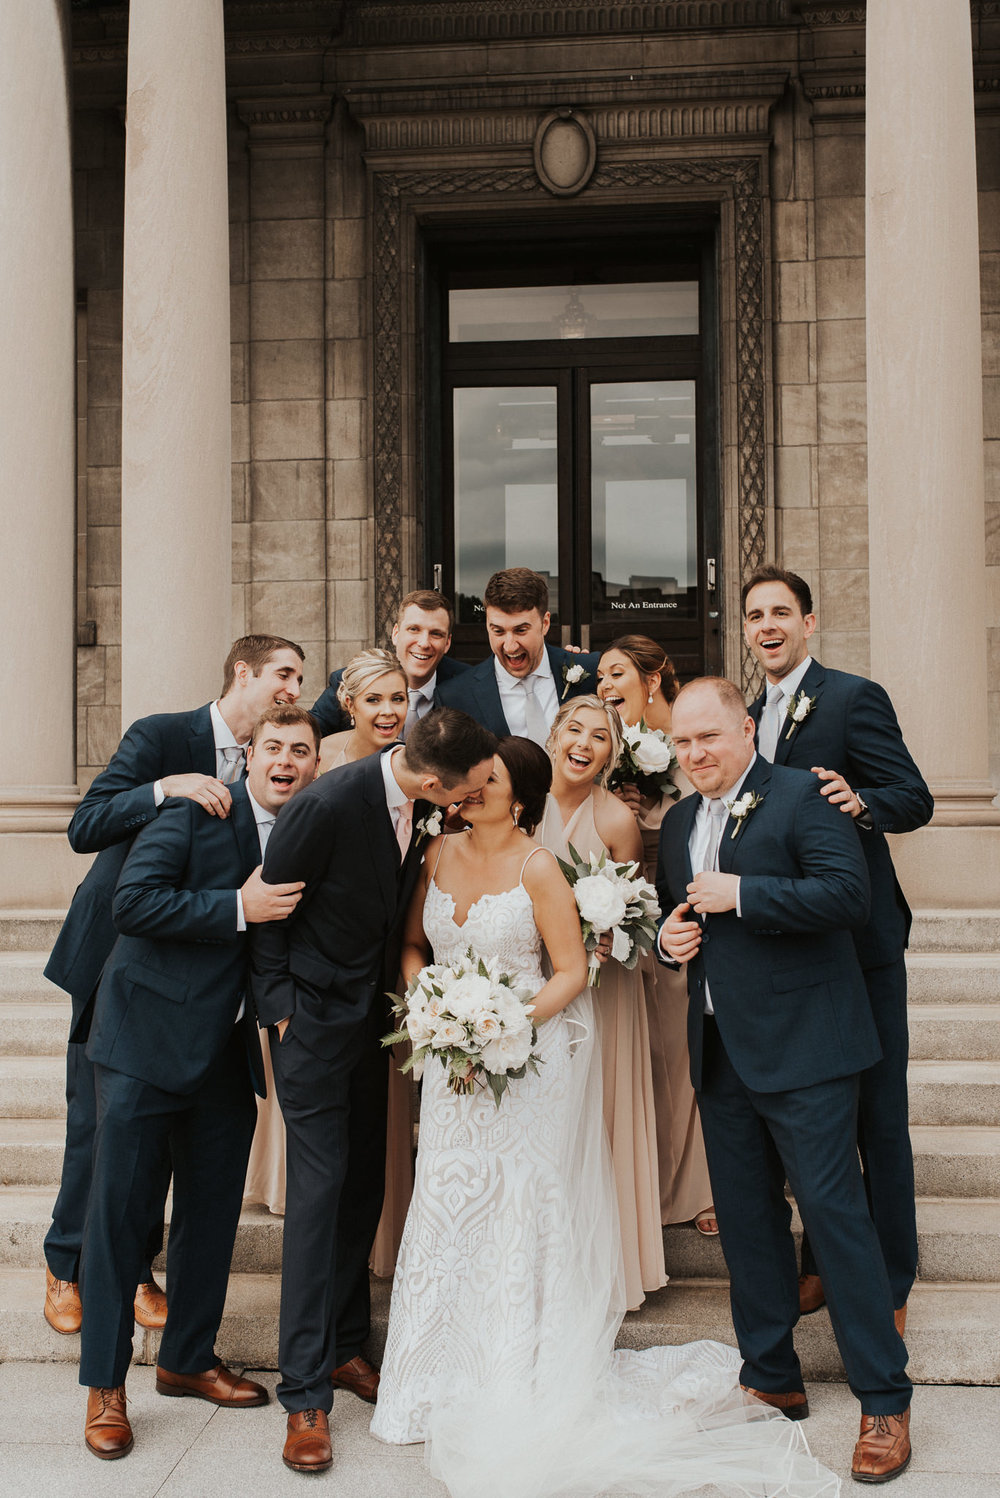 Kaeley+Ryan-78.jpg